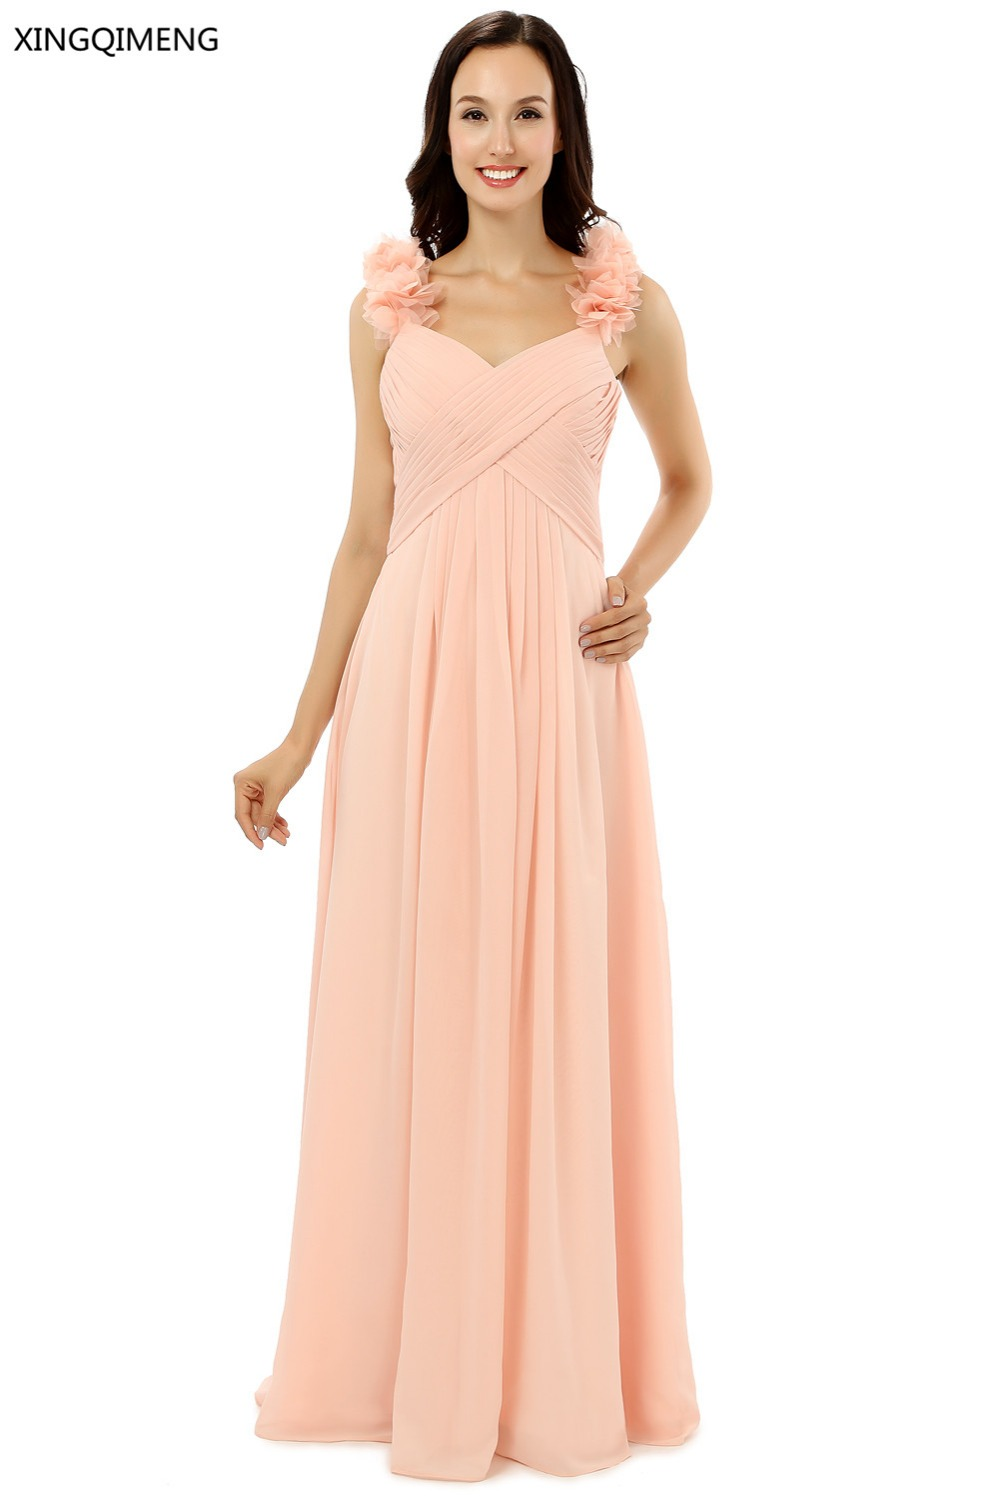 Online buy wholesale blushing pink bridesmaid dresses from china cheap bridesmaid dresses 2017 blush pink bridesmaid dress floor length wedding party dresses custom made ombrellifo Gallery